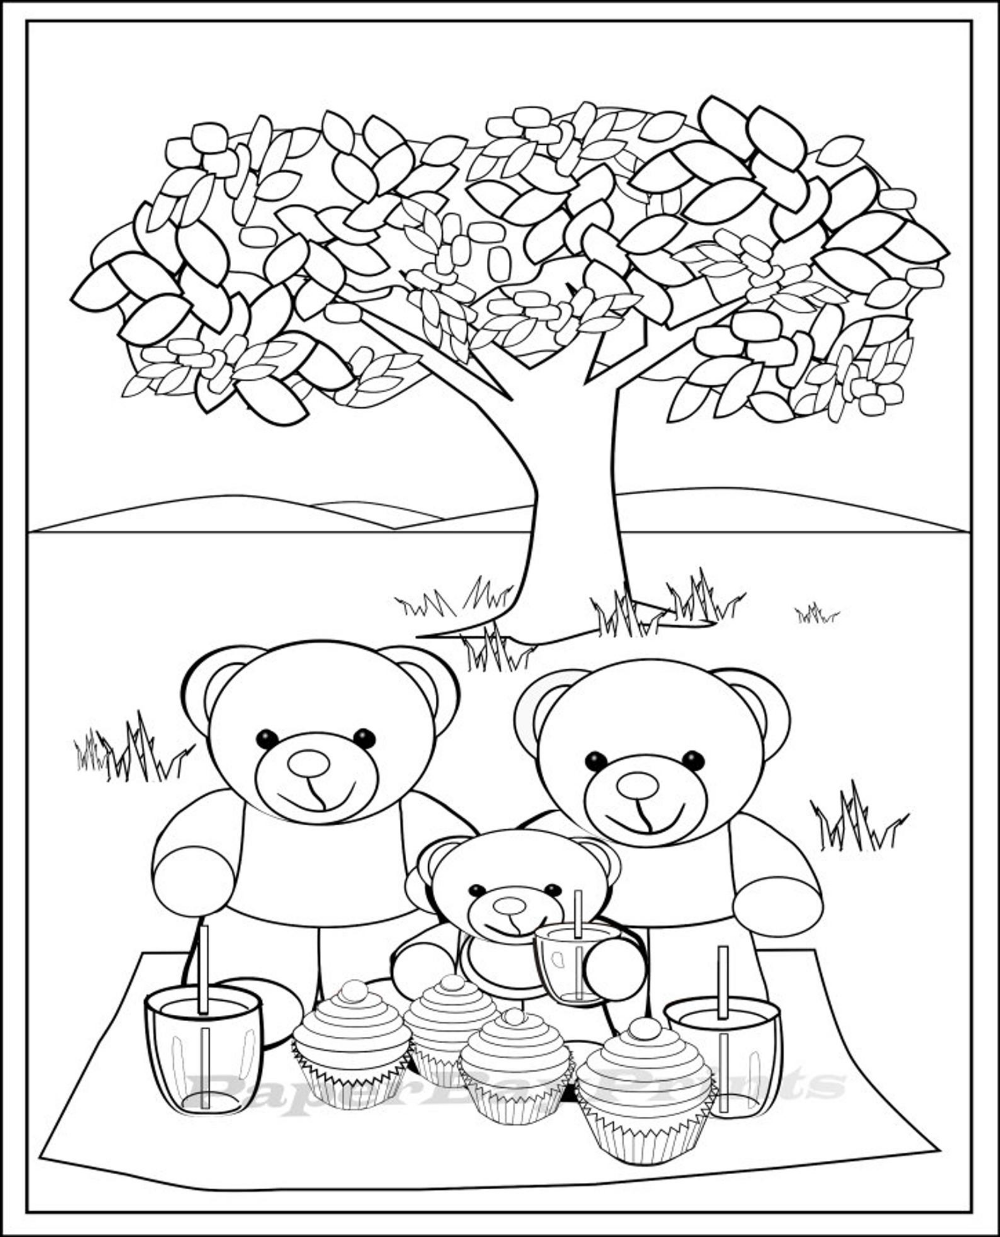 Teddy Bear Picnic Coloring Page Coloring Pages For Kids Etsy In 2021 Bear Coloring Pages Teddy Bear Coloring Pages Teddy Bear Pictures